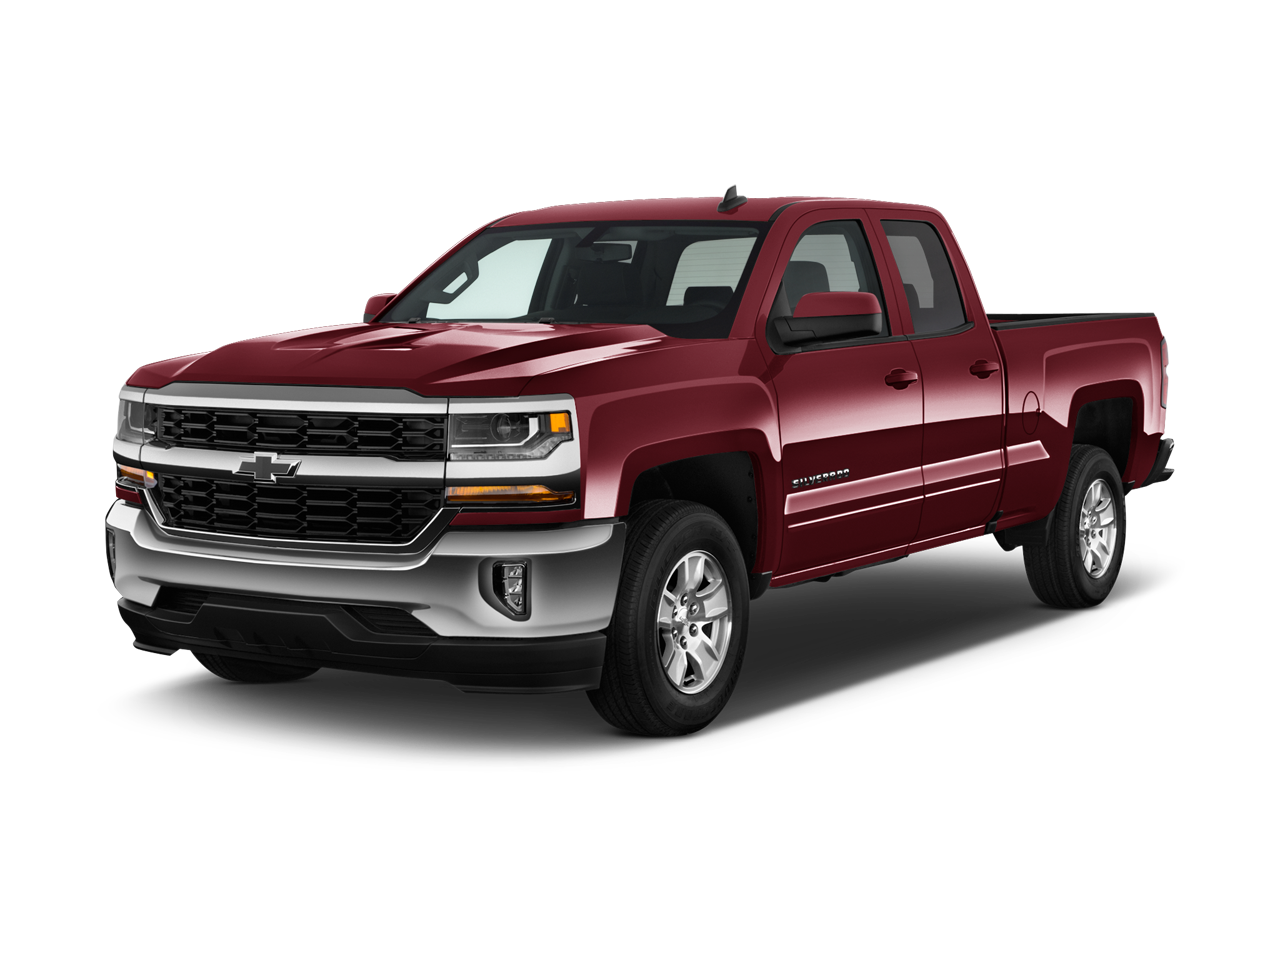 new 2017 chevrolet silverado 1500 lt near oxford pa jeff d 39 ambrosio chevrolet. Black Bedroom Furniture Sets. Home Design Ideas